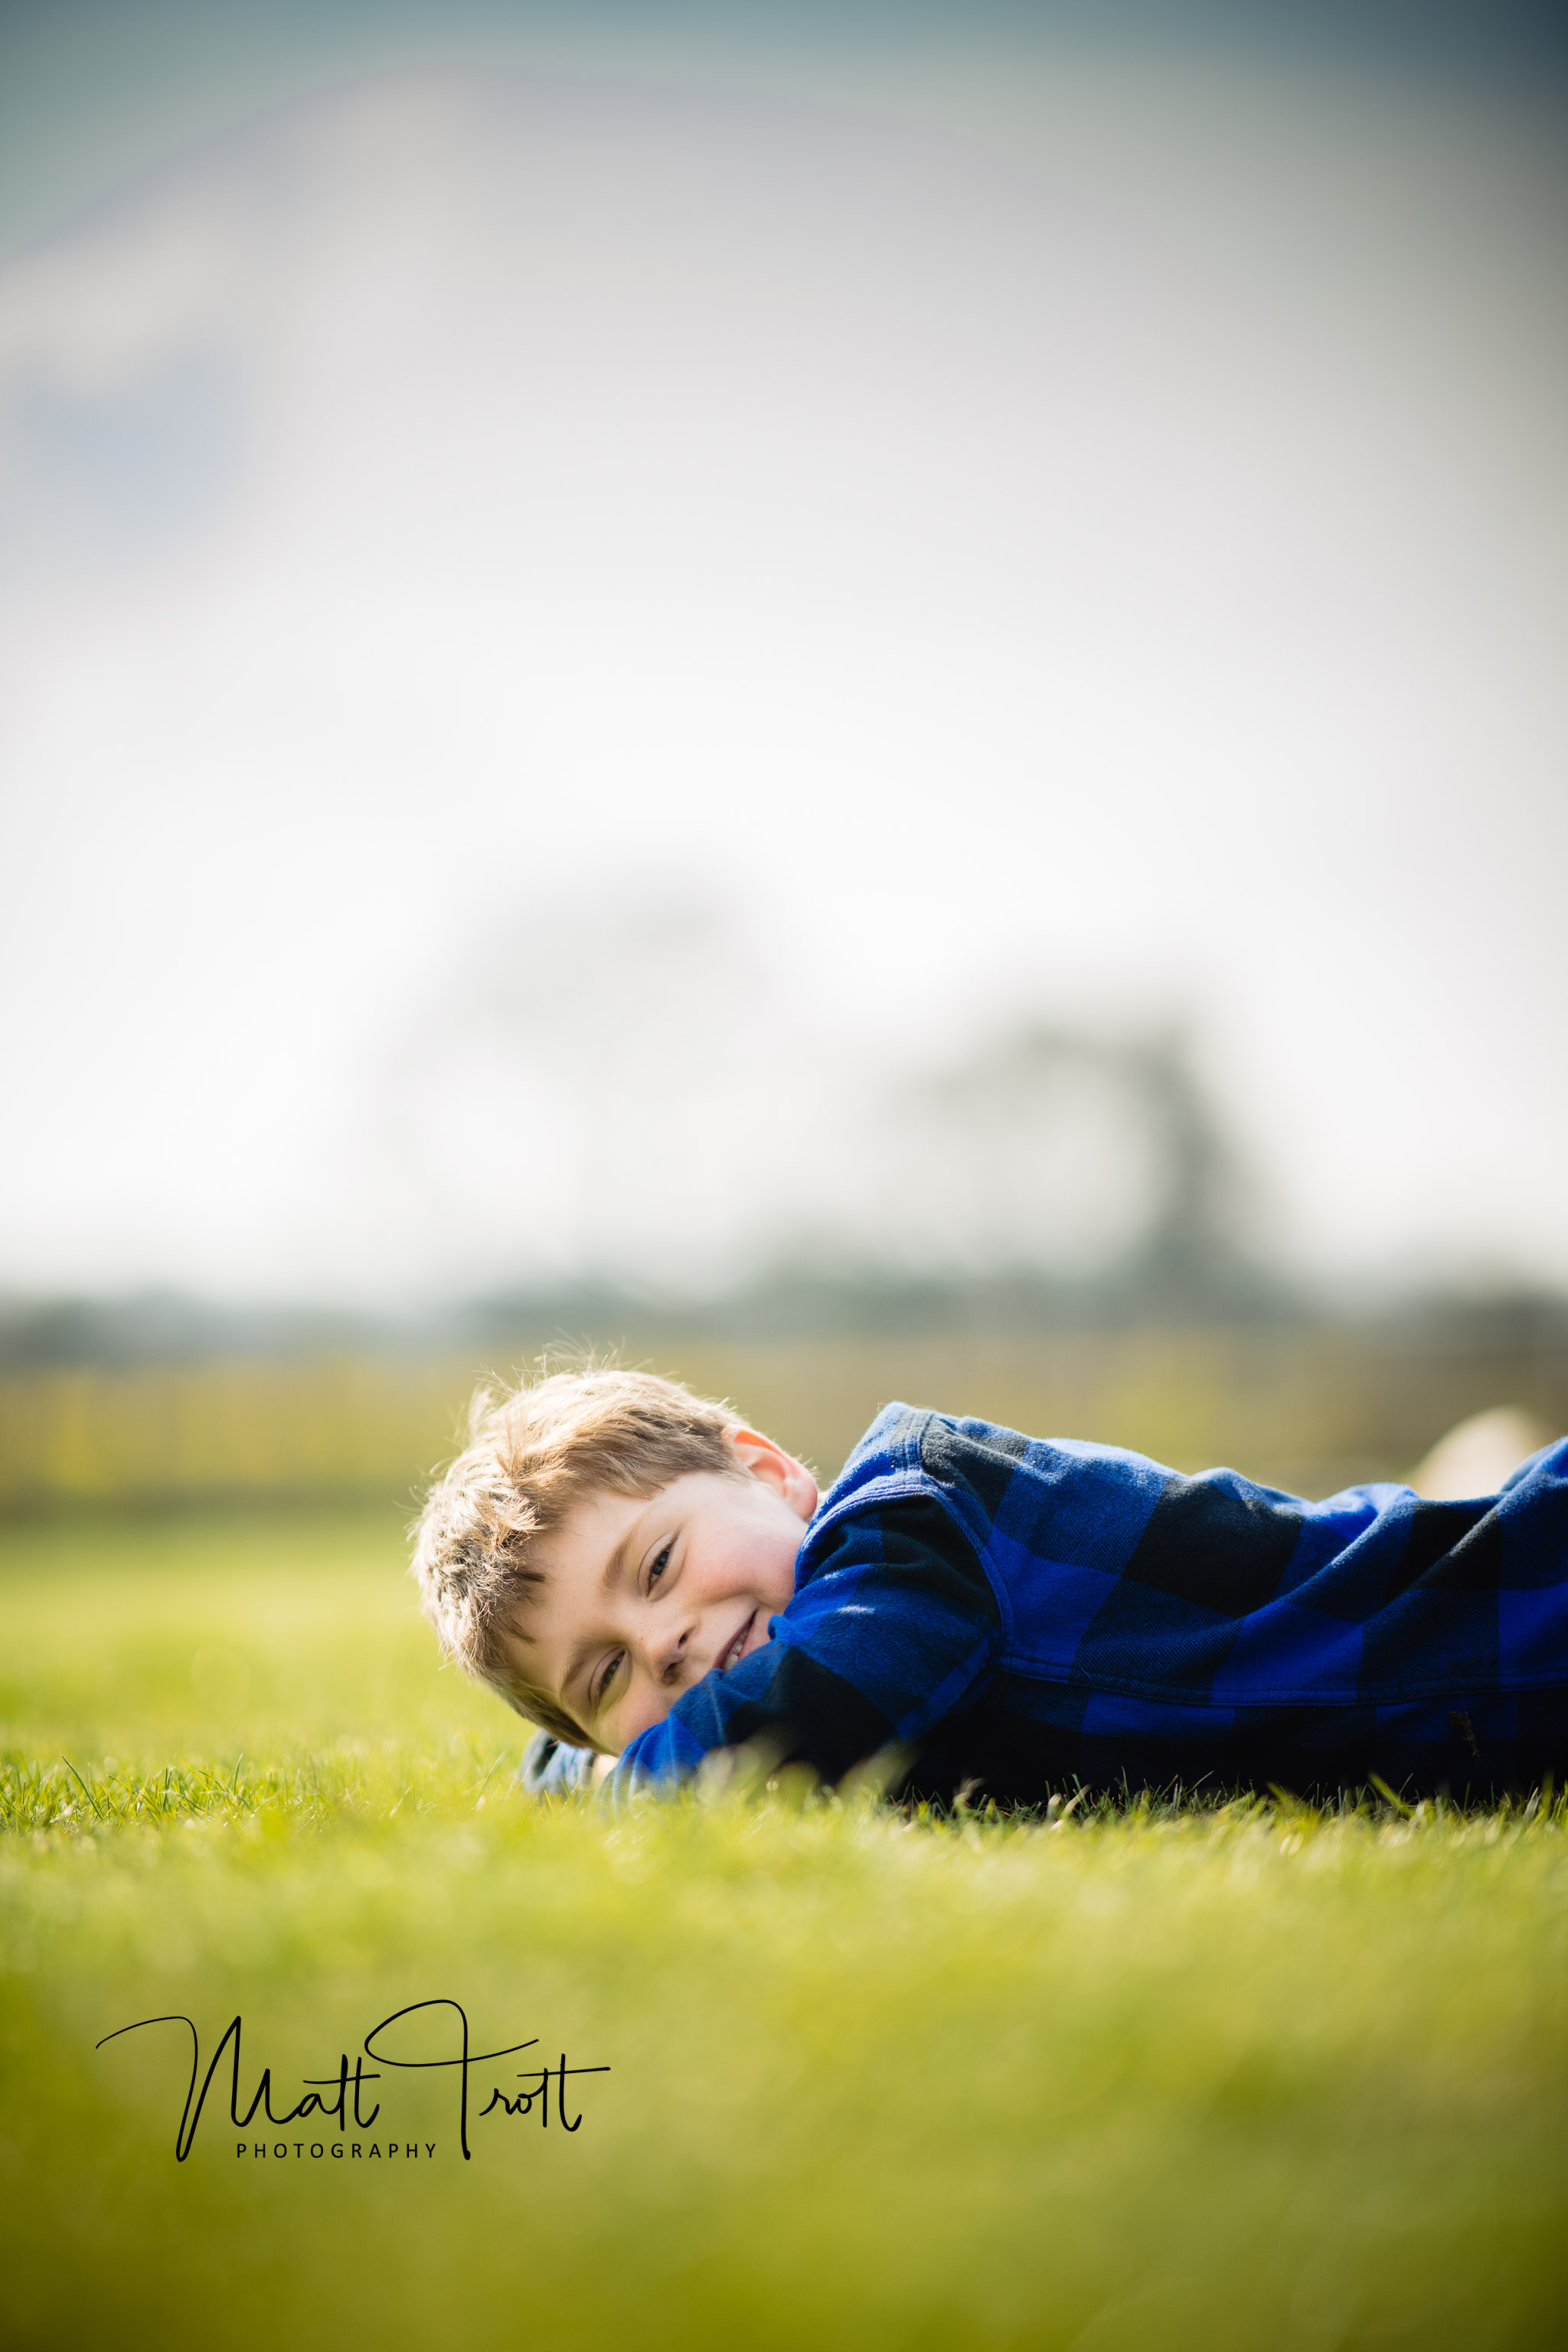 Boy laying on grass smiling.JPG